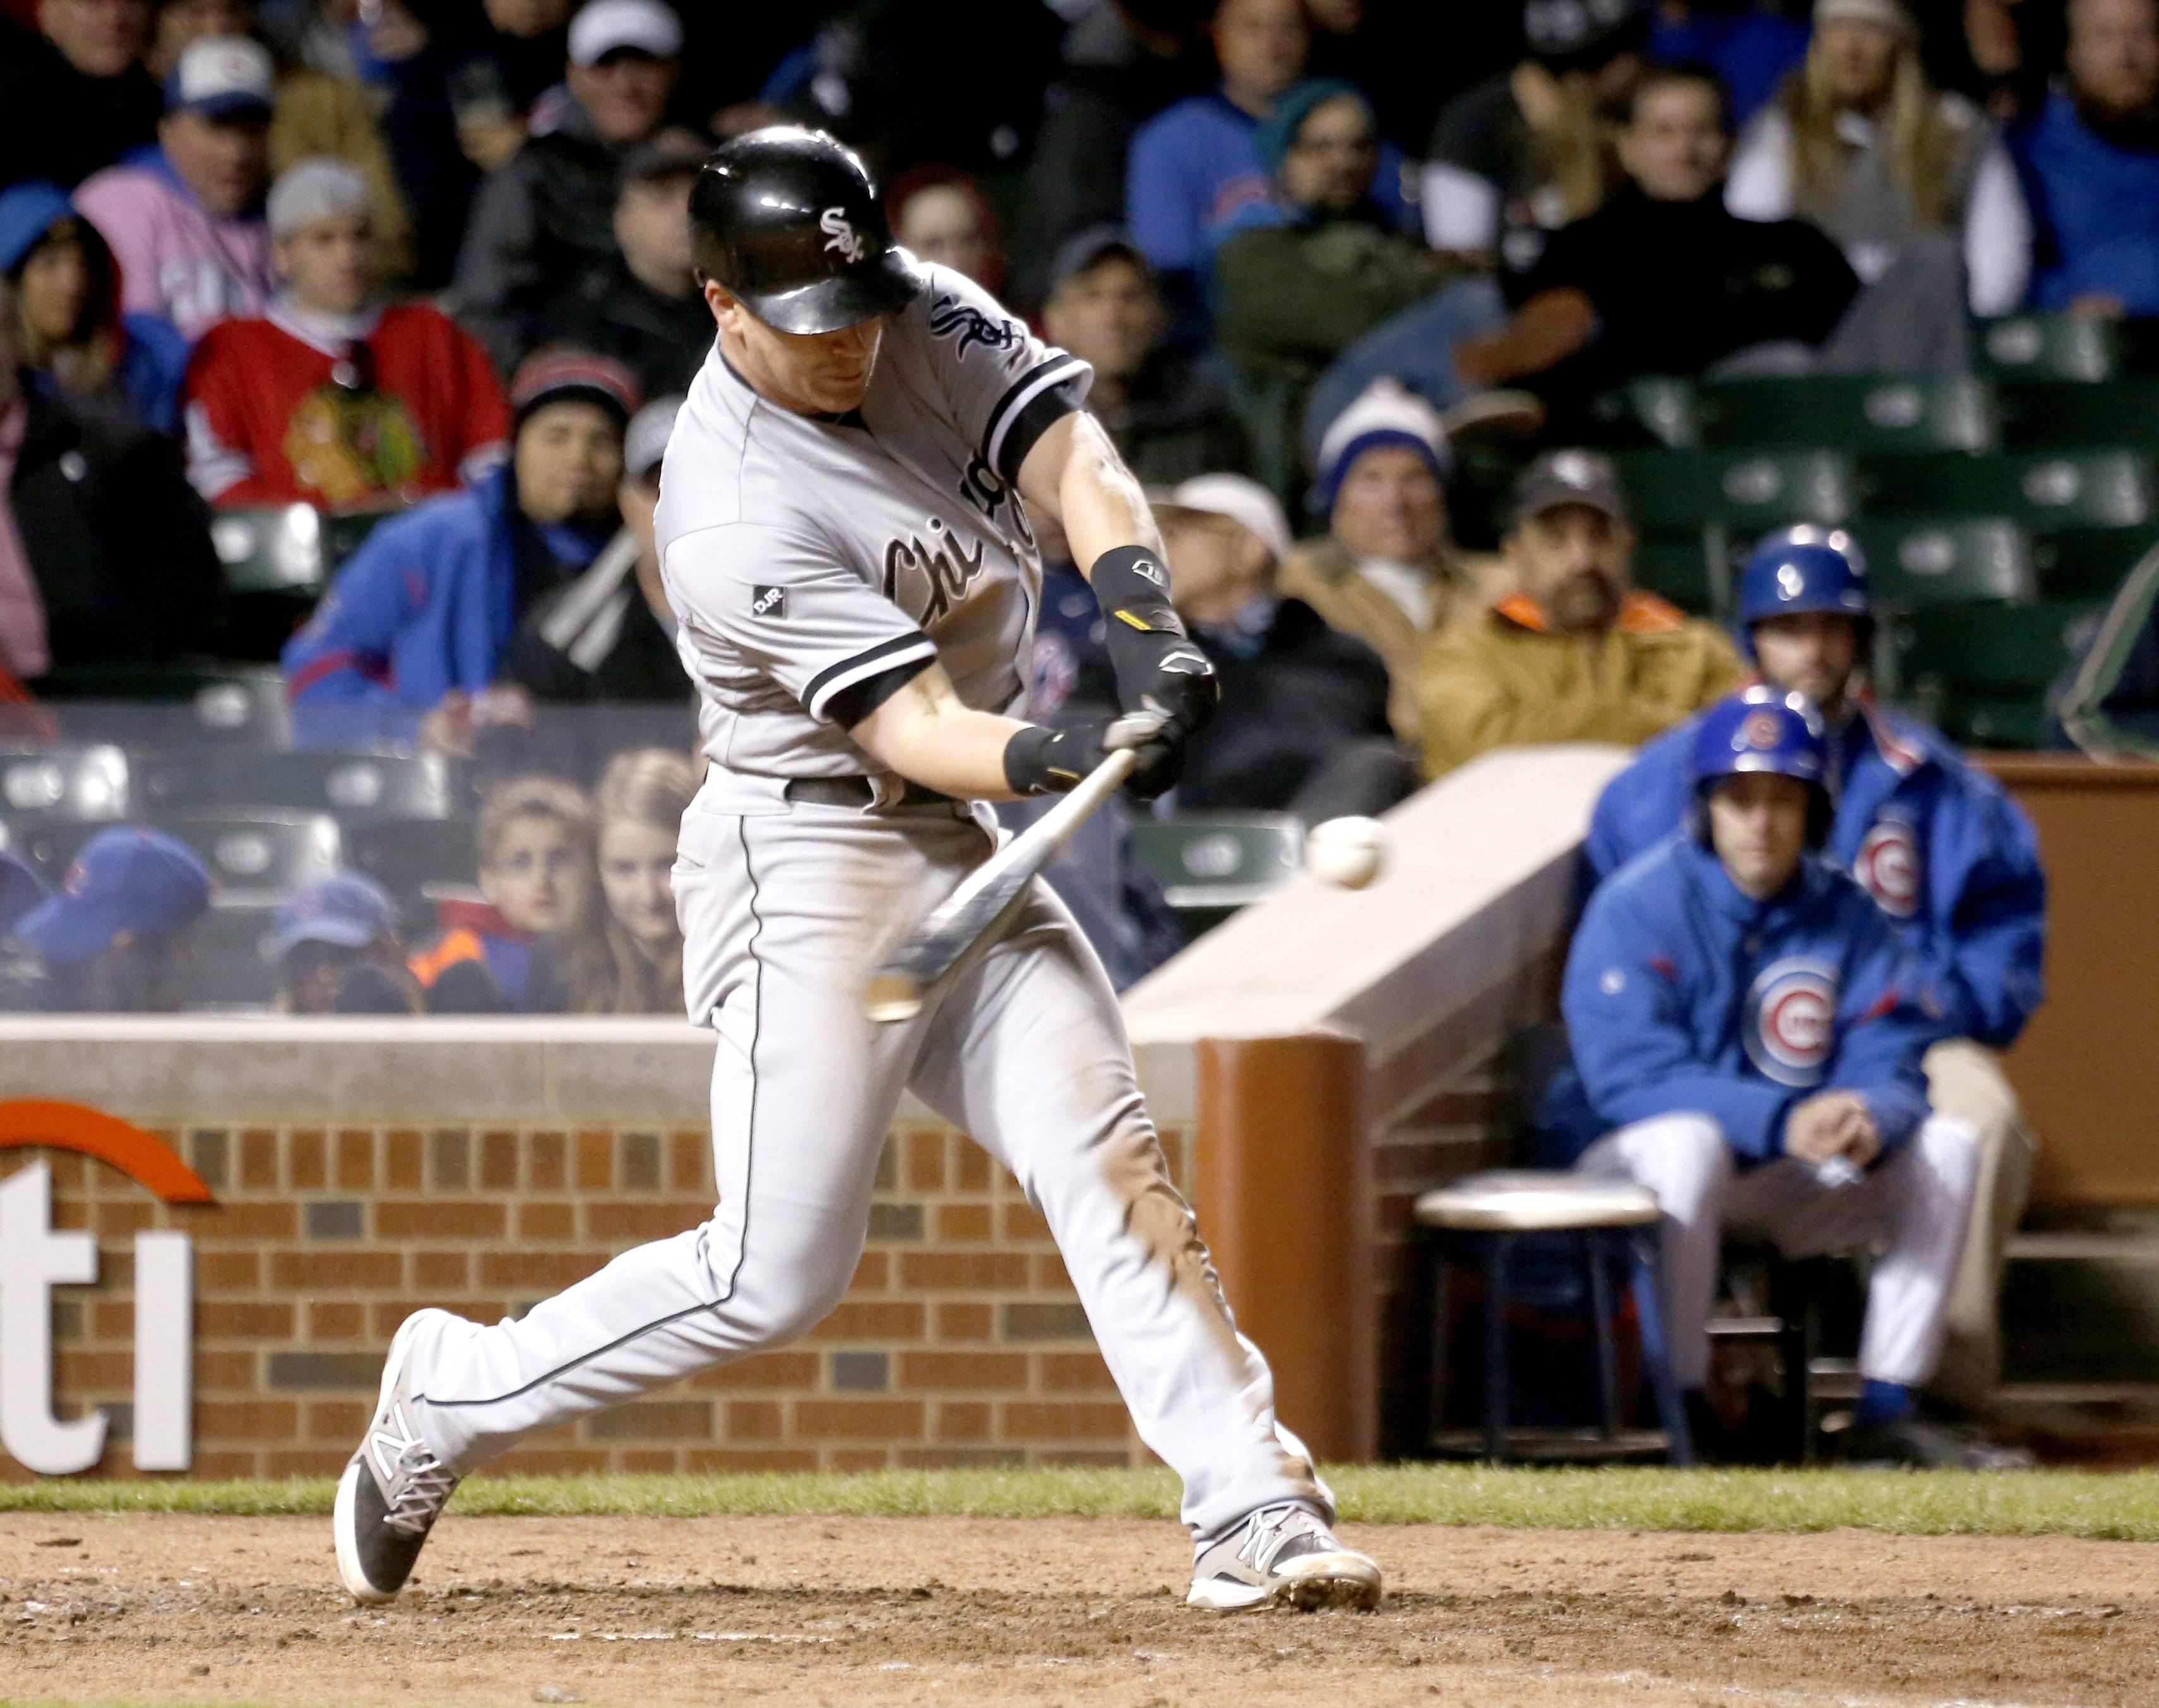 Chicago White Sox's Gordon Beckham launches a home run off Chicago Cubs relief pitcher Neil Ramirez during the eighth inning of an interleague baseball game Tuesday, May 6, 2014, in Chicago. (AP Photo/Charles Rex Arbogast)